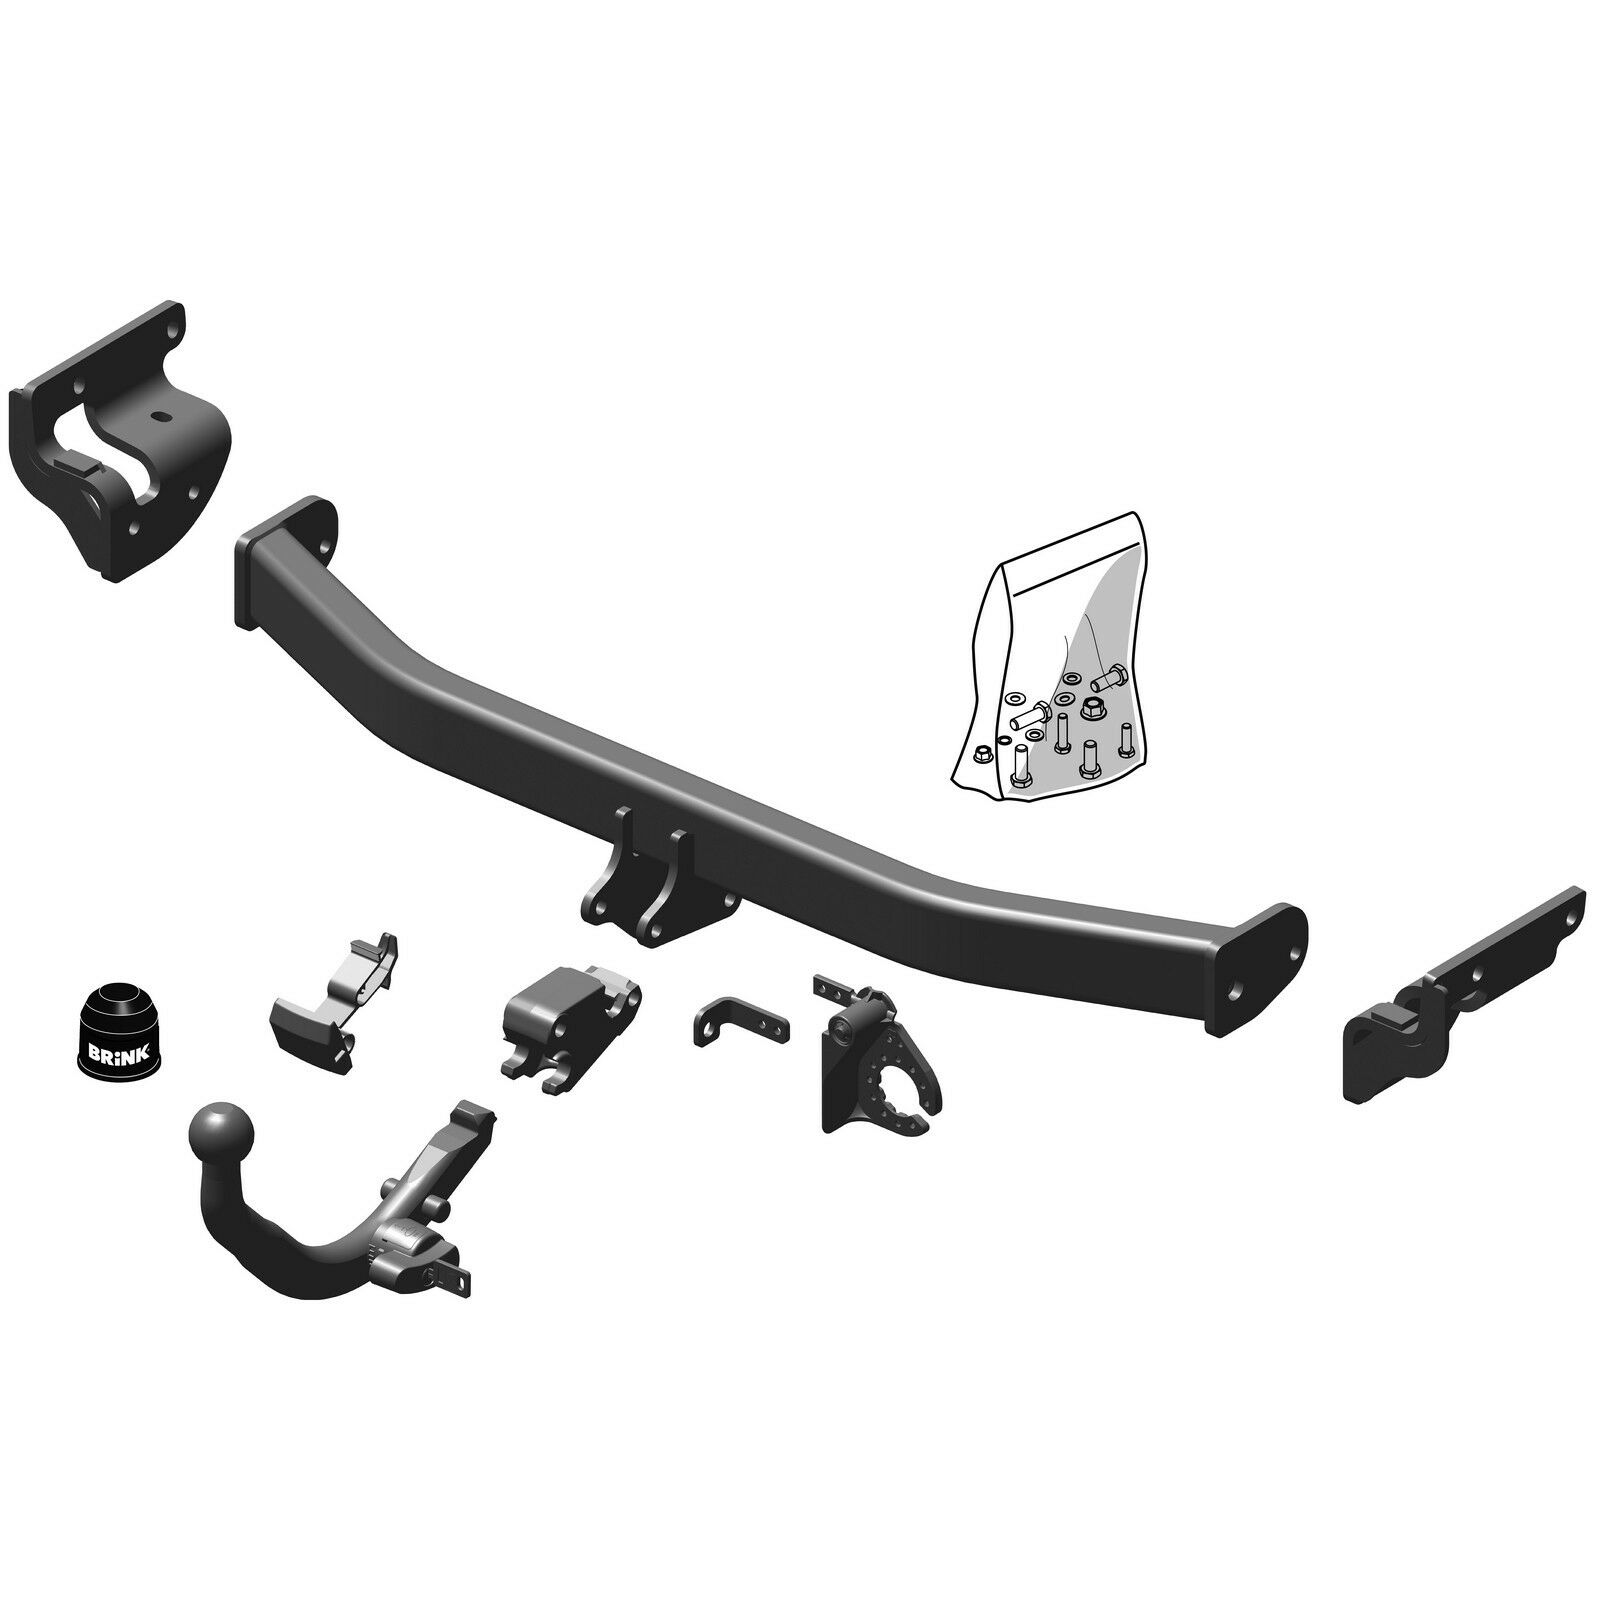 Detachable Tow Bar Brink Towbar for Citroen C4 Picasso 2013 Onwards